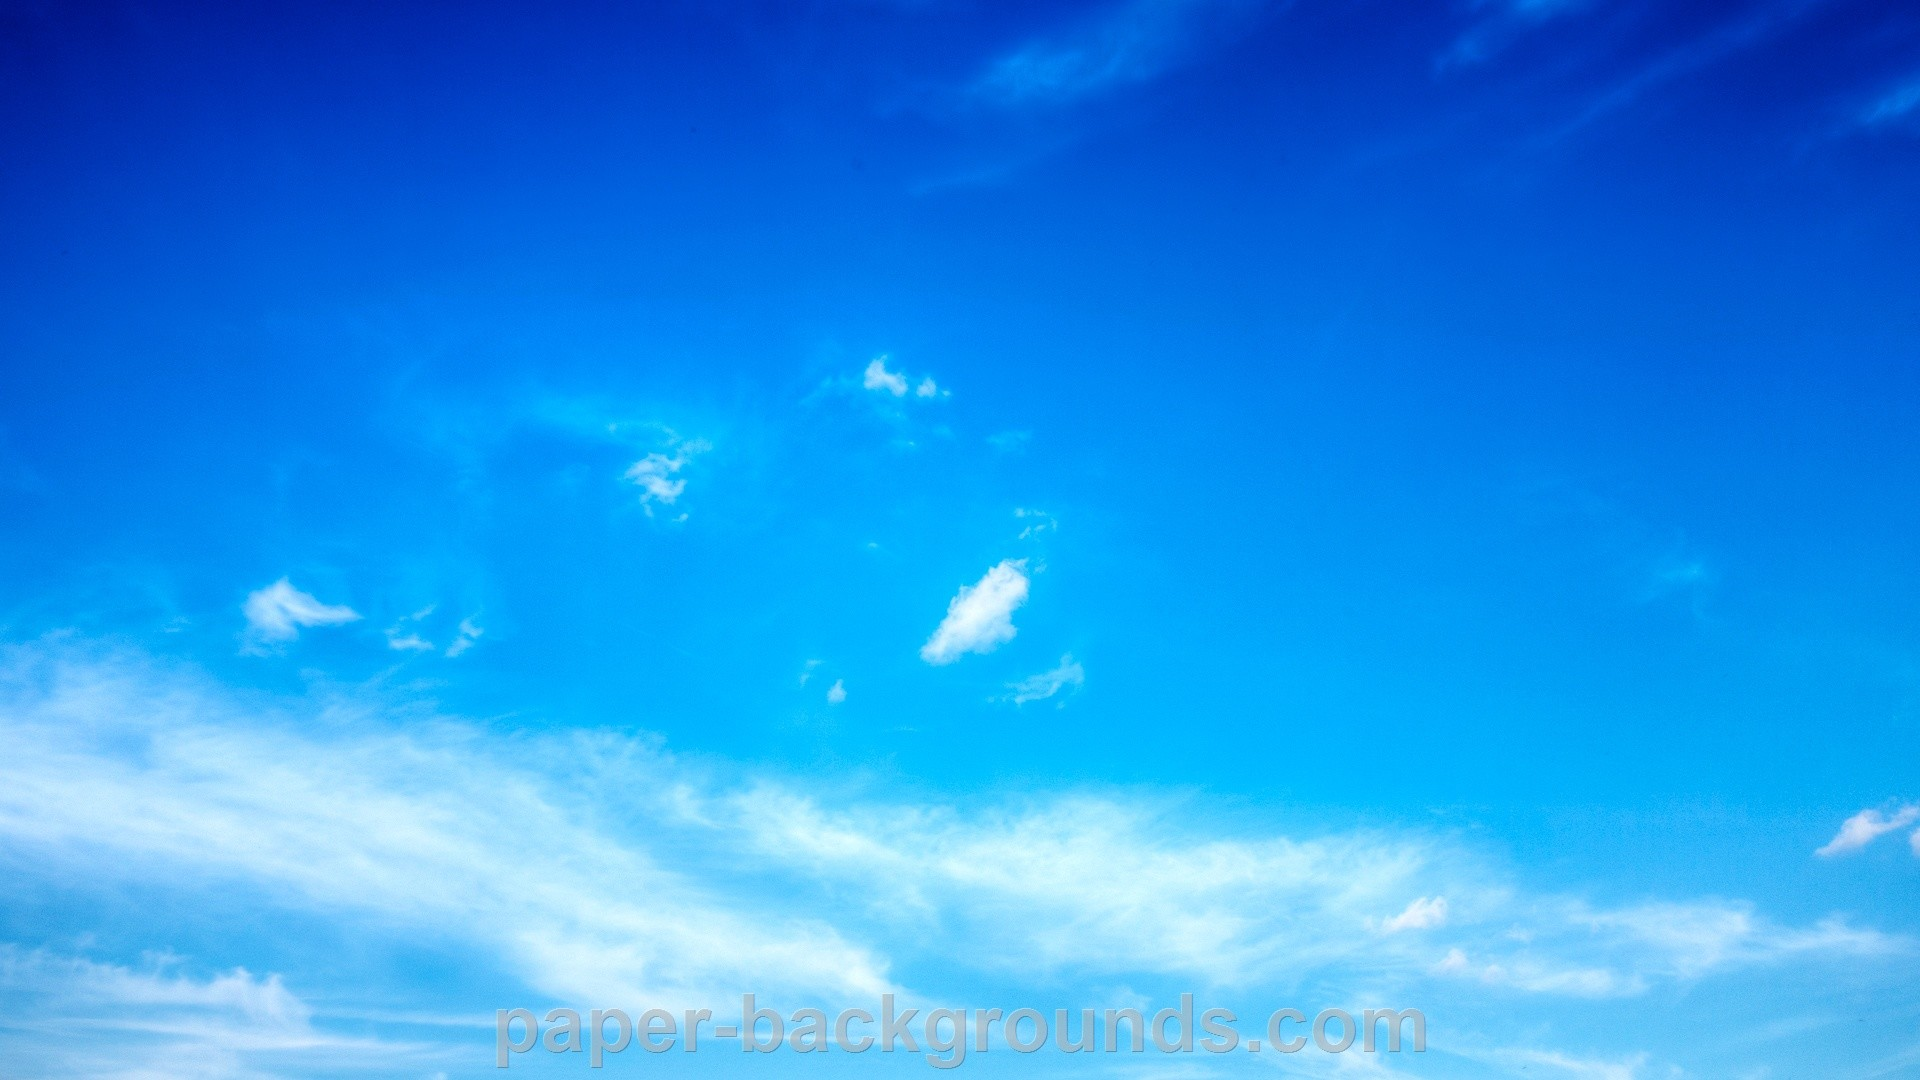 Blue Sky Wallpaper Background 64 Images